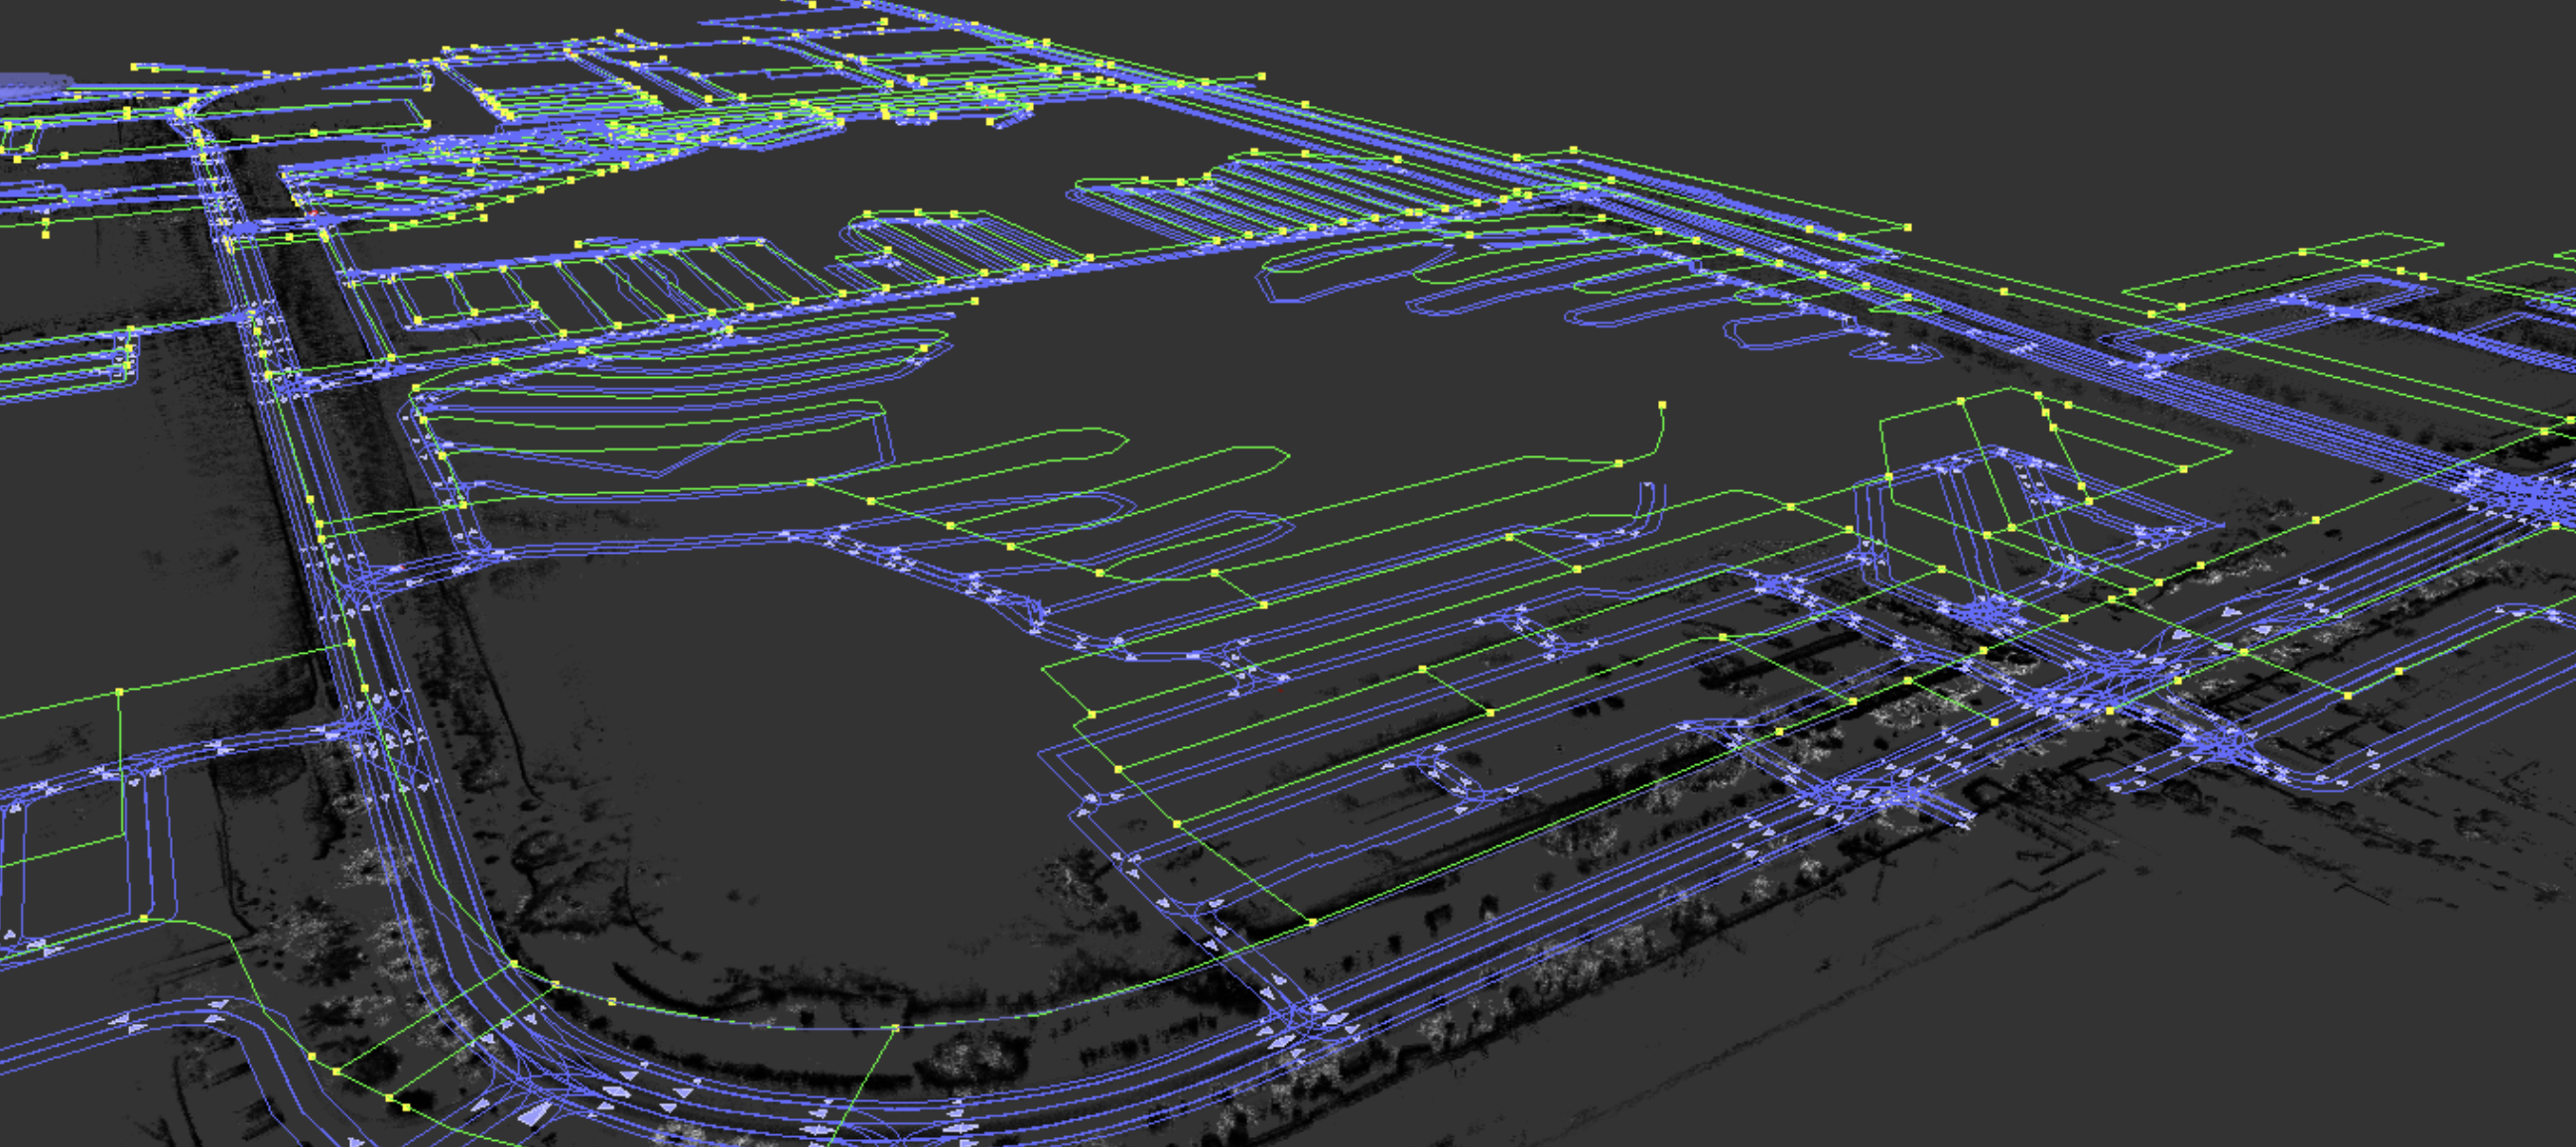 Rethinking Maps for Self-Driving